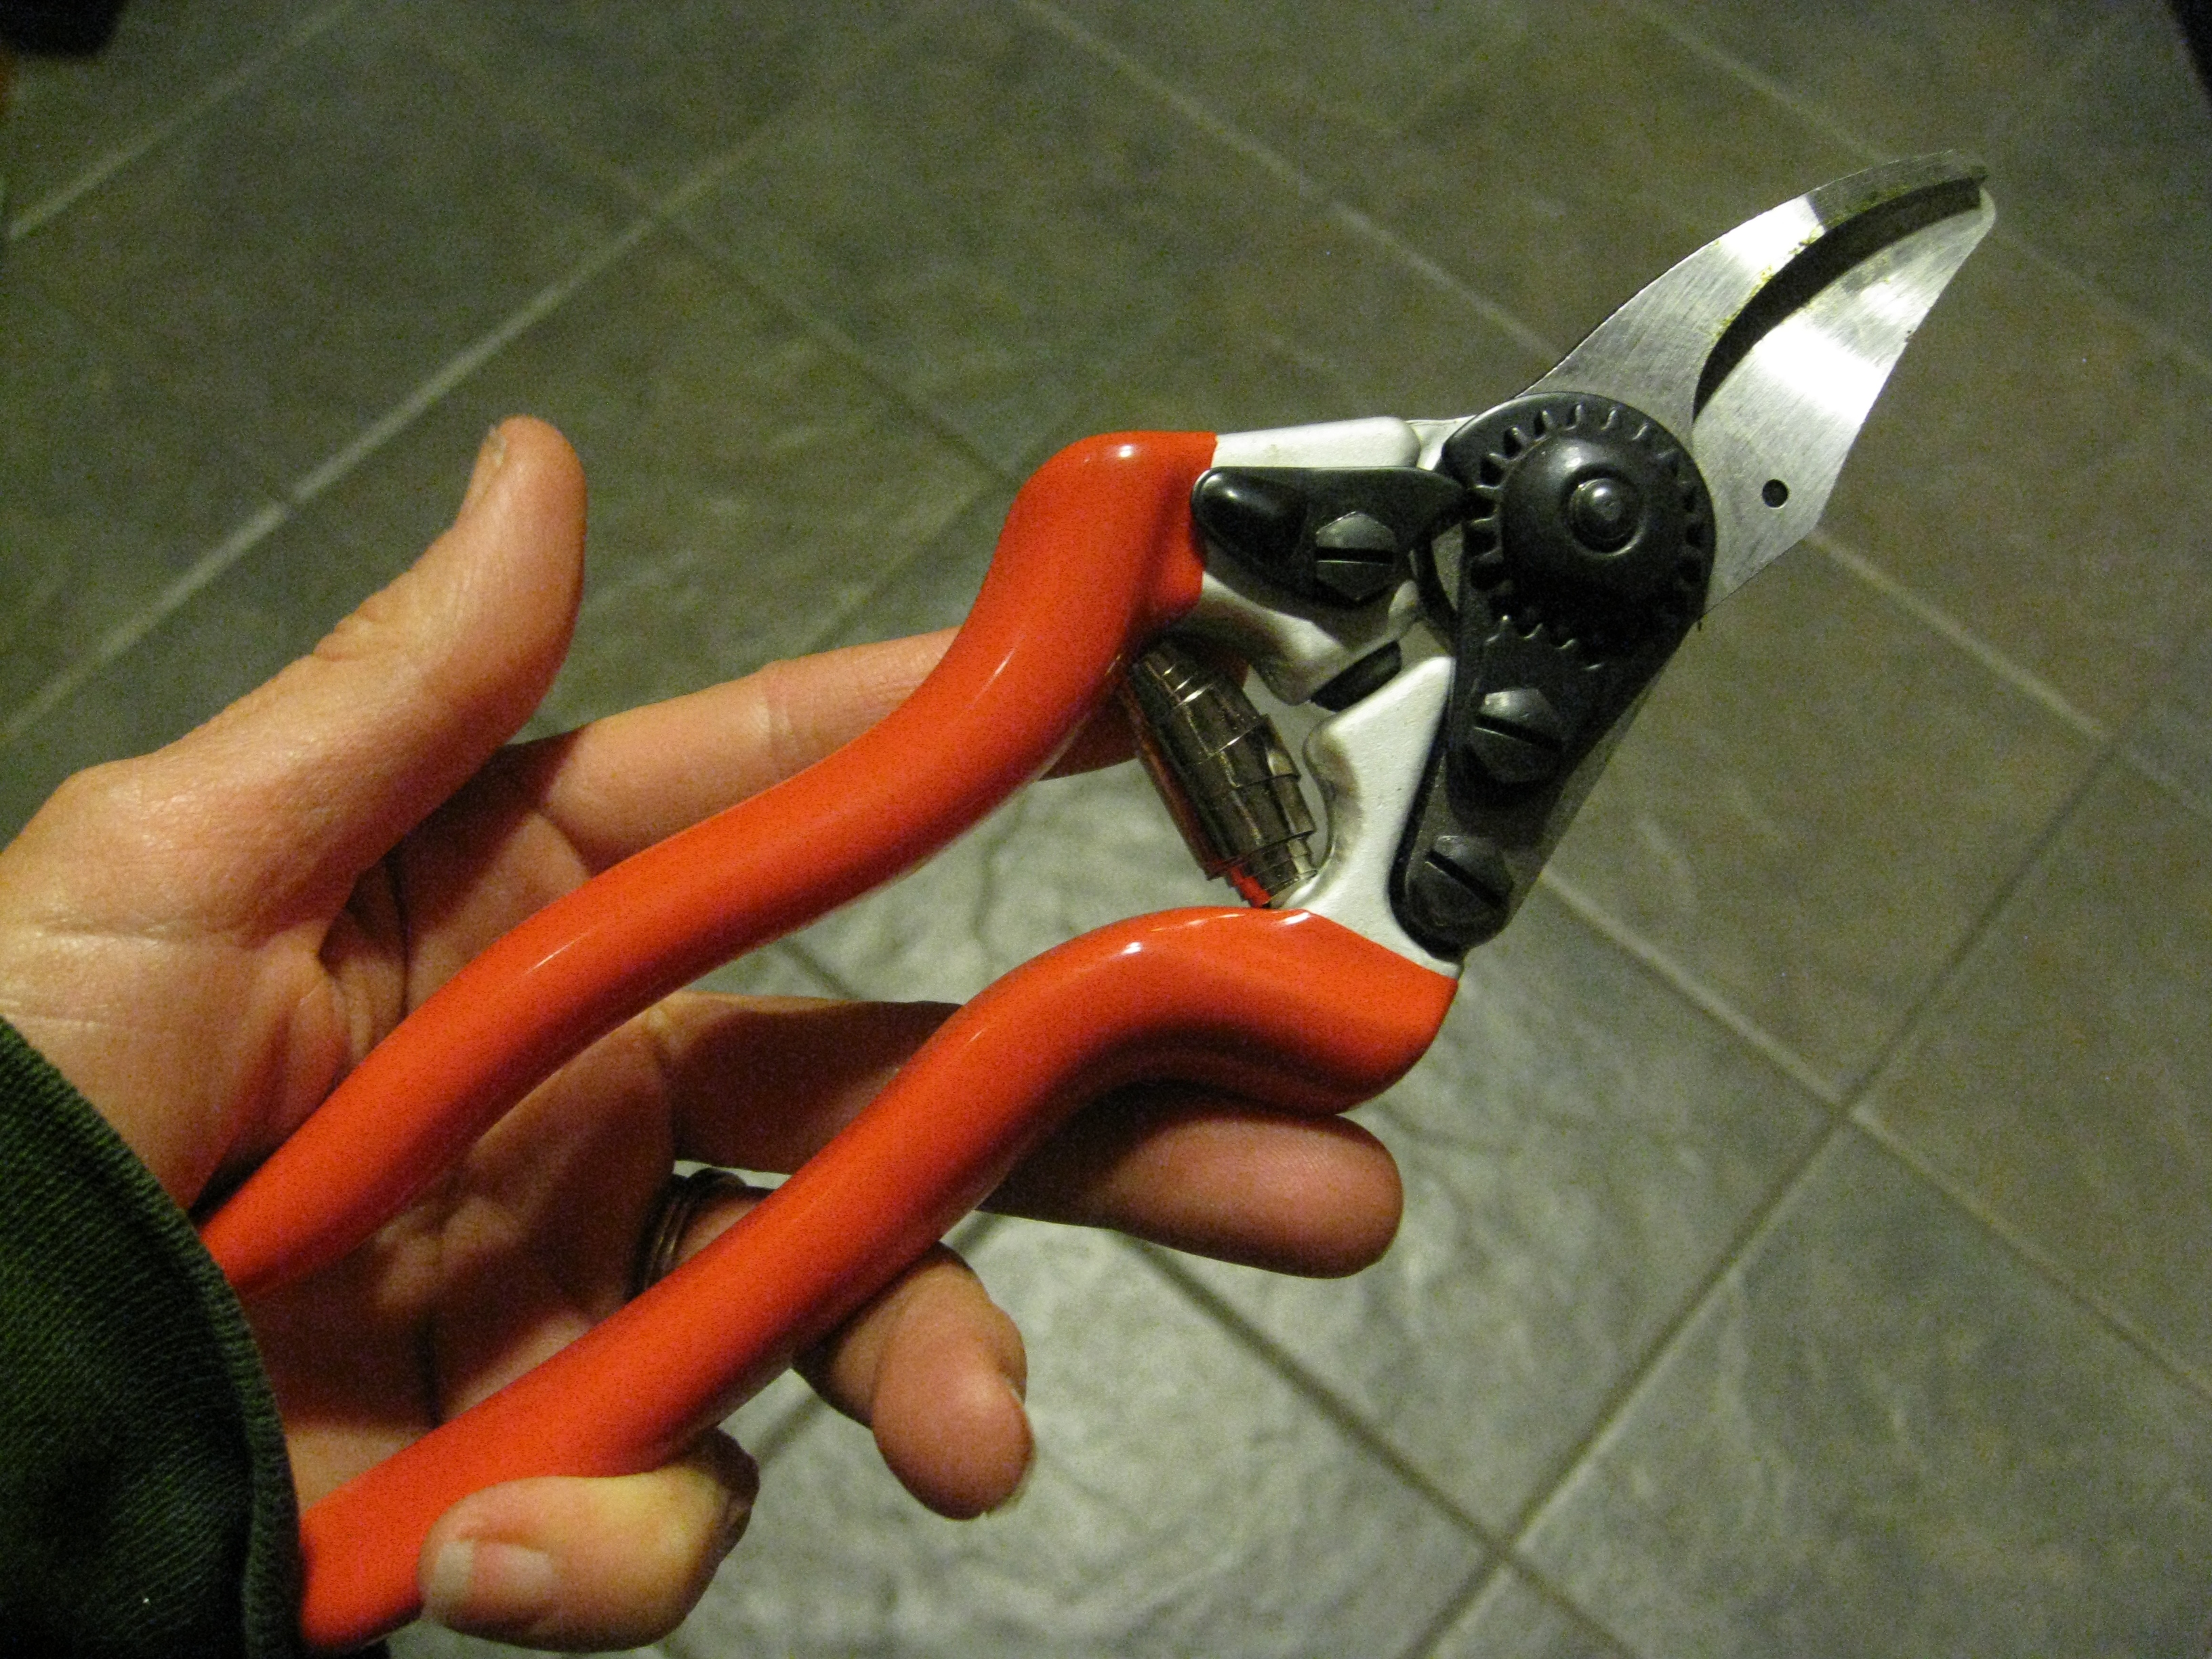 New pruning shears from Corona. Nice!